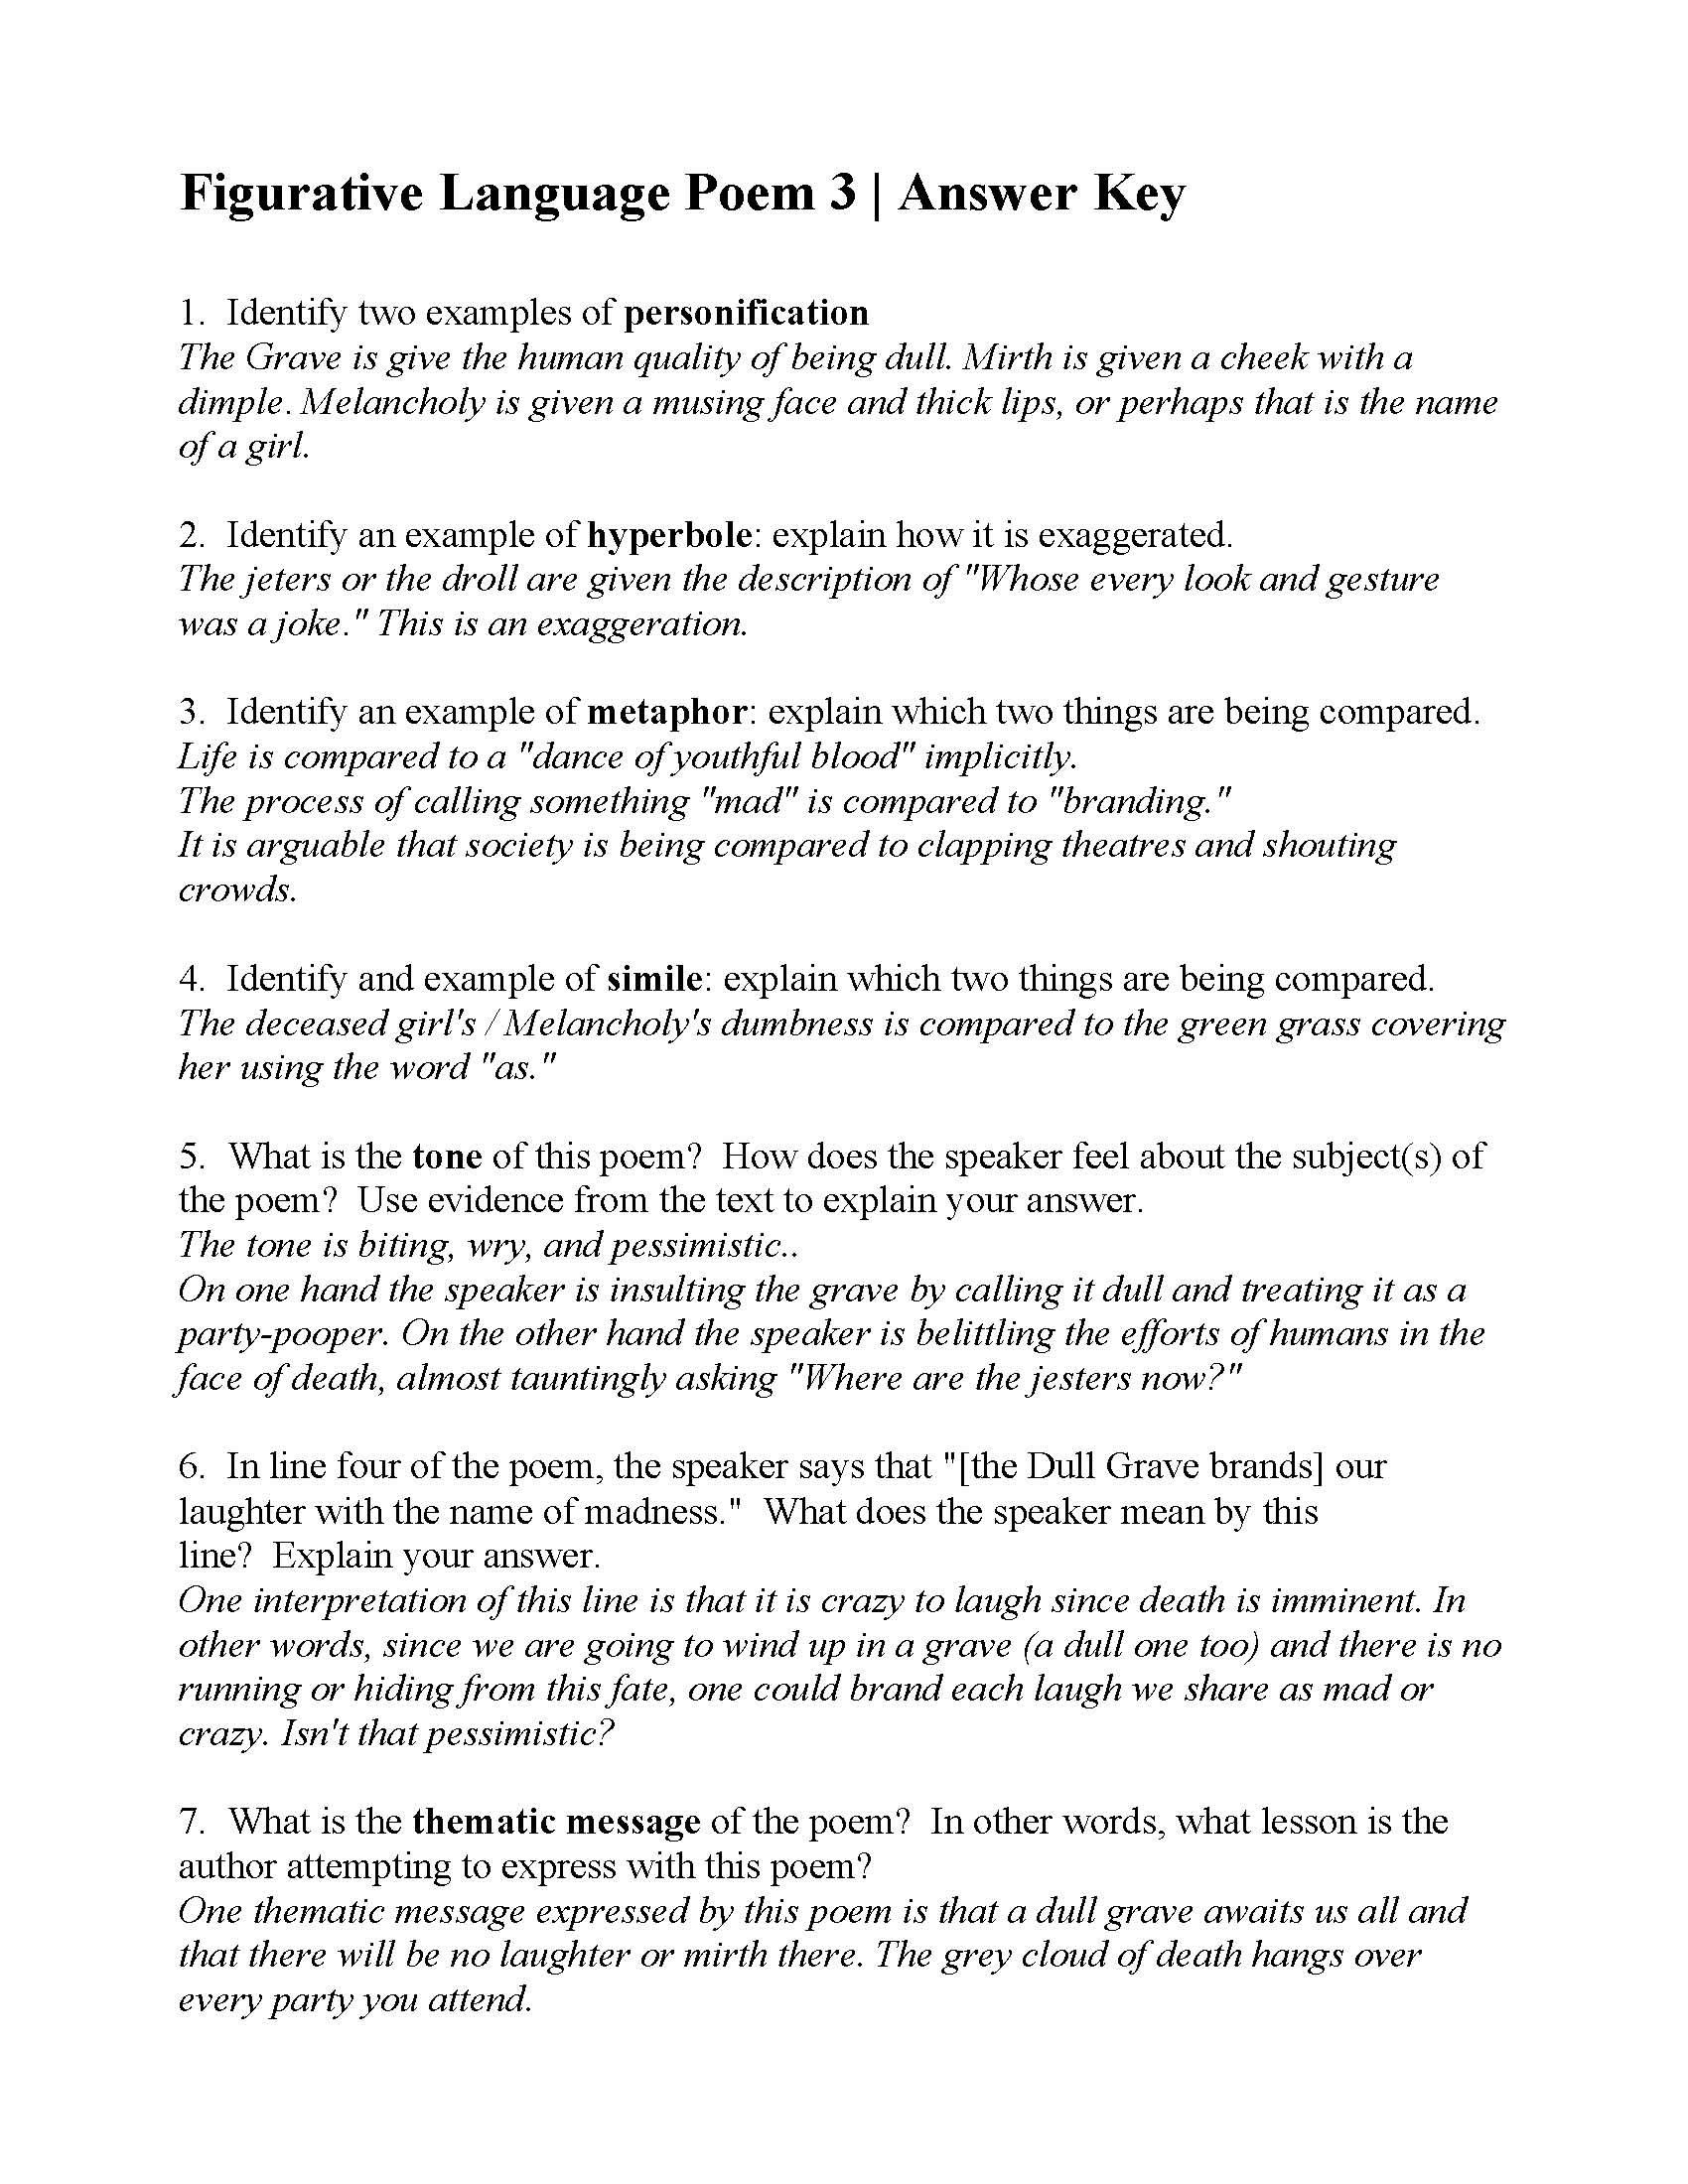 Figurative Language Worksheets 5th Grade This is the Answer Key for the Figurative Language Poem 3